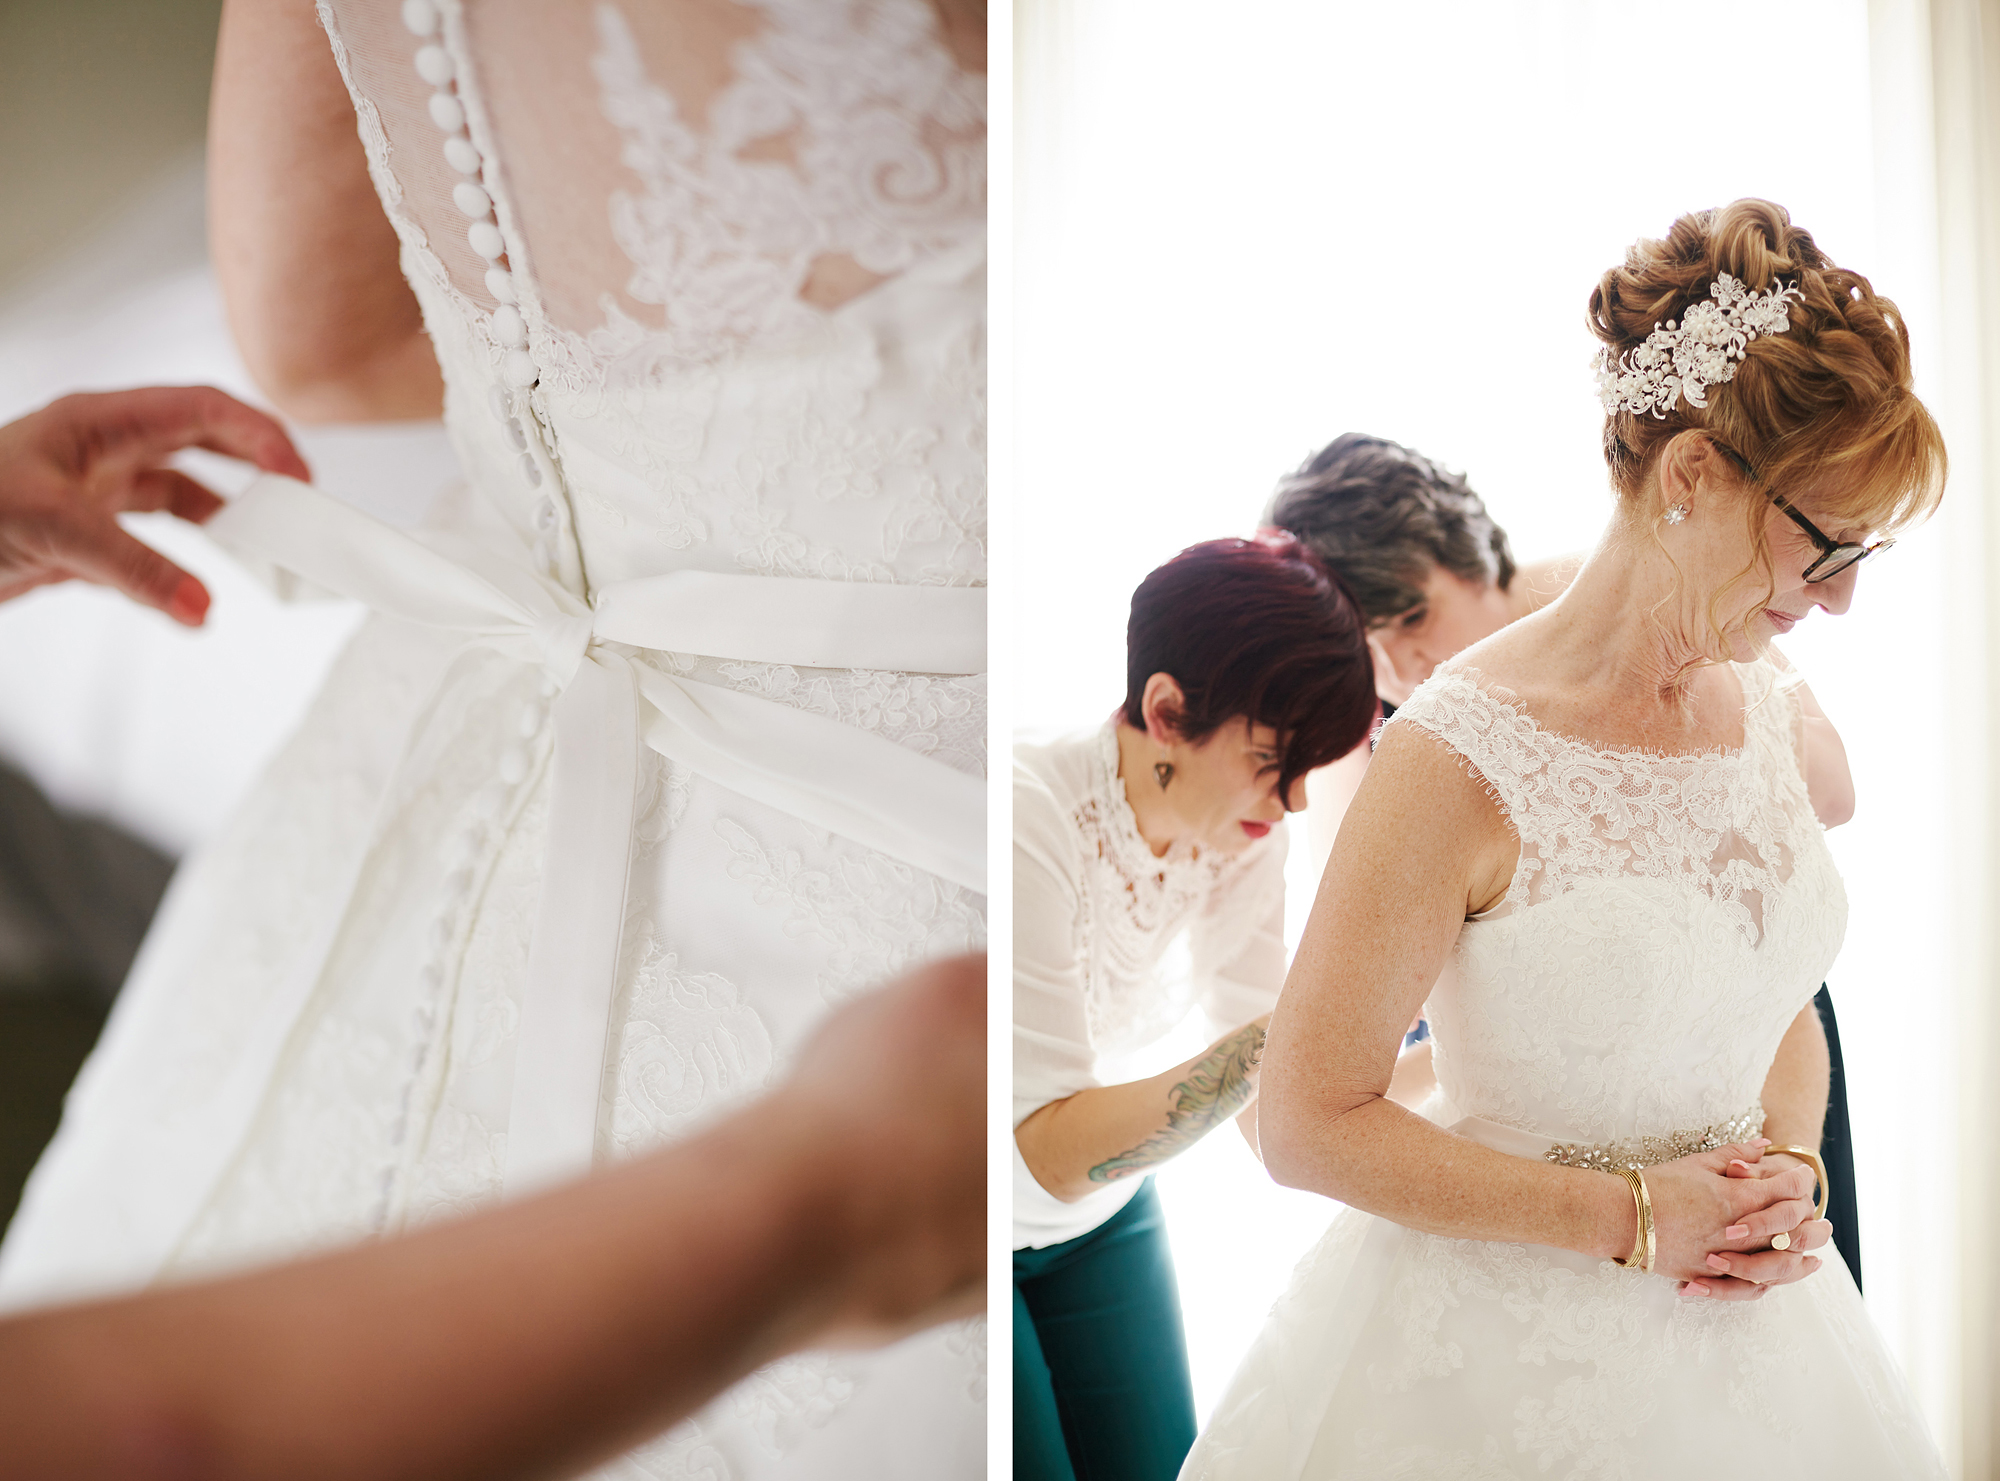 Tying the wedding gown bow